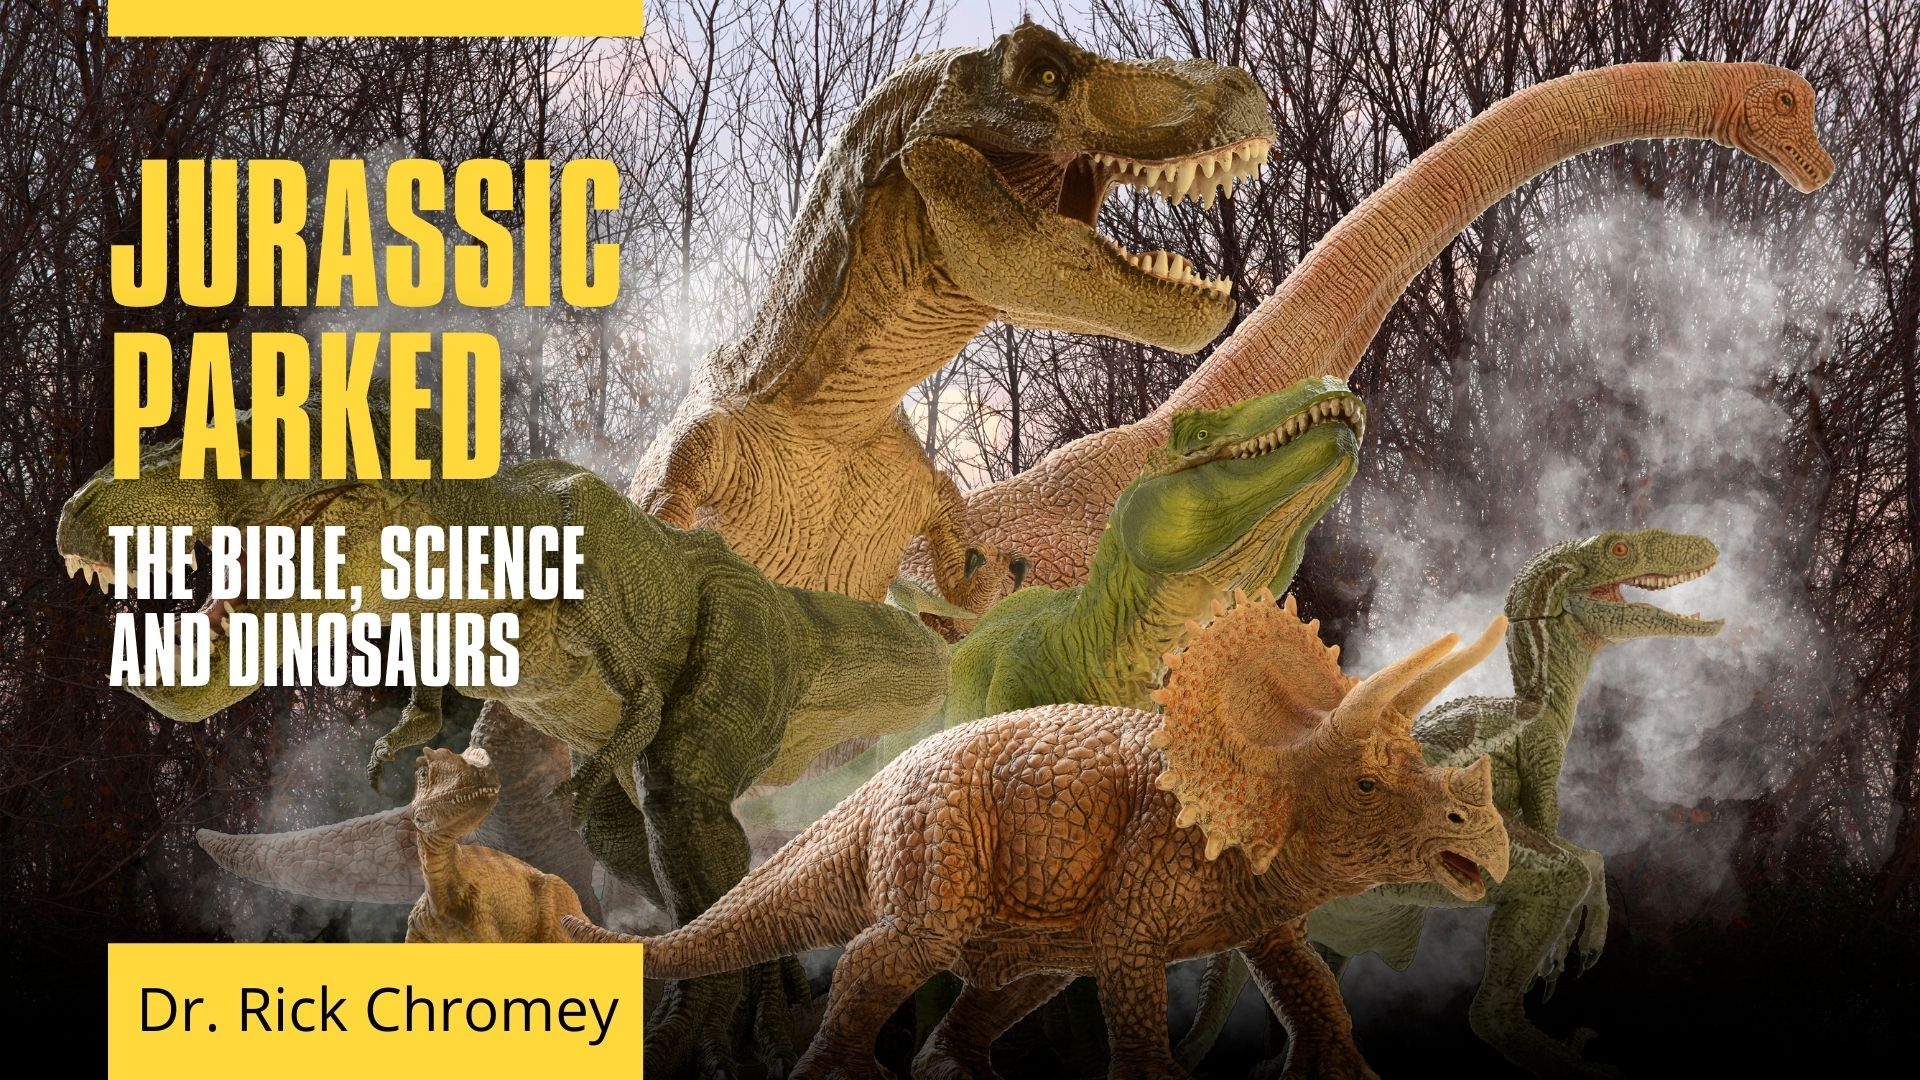 Jurassic Parked.Dinosaurs and Bible TITLE